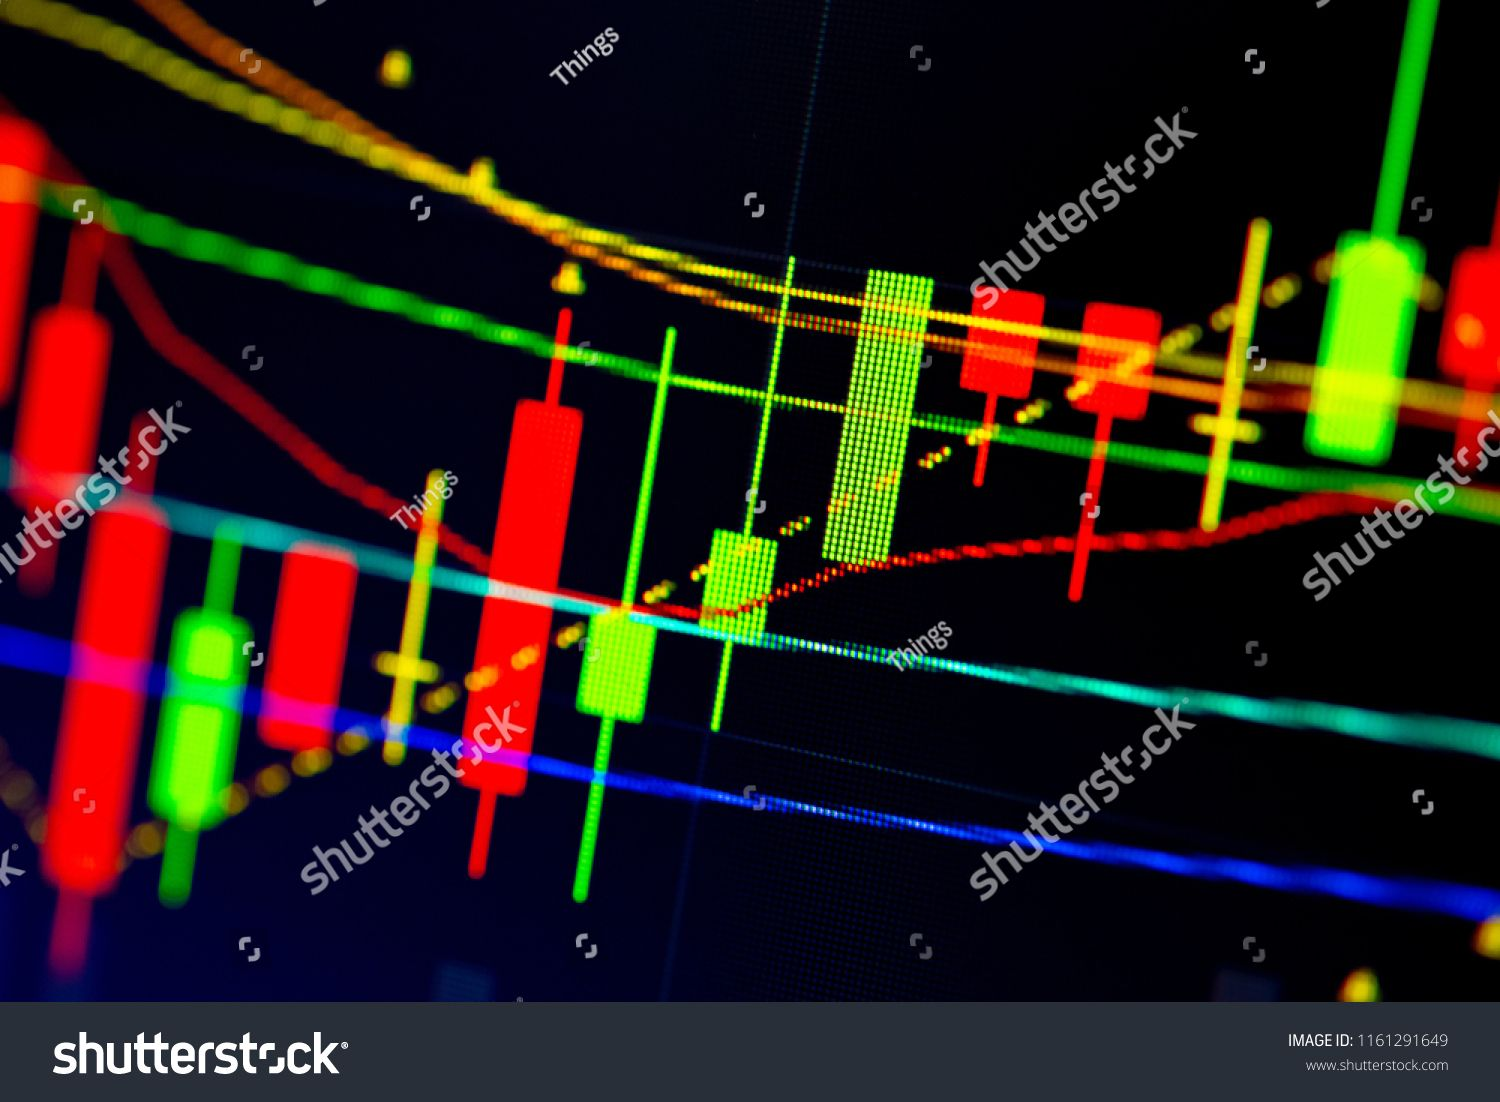 Stock Market Data On Digital Led Display A Daily Market Price And Quotation Of Prices Chart And Candle Sti Stock Market Data Price Chart Infographic Templates